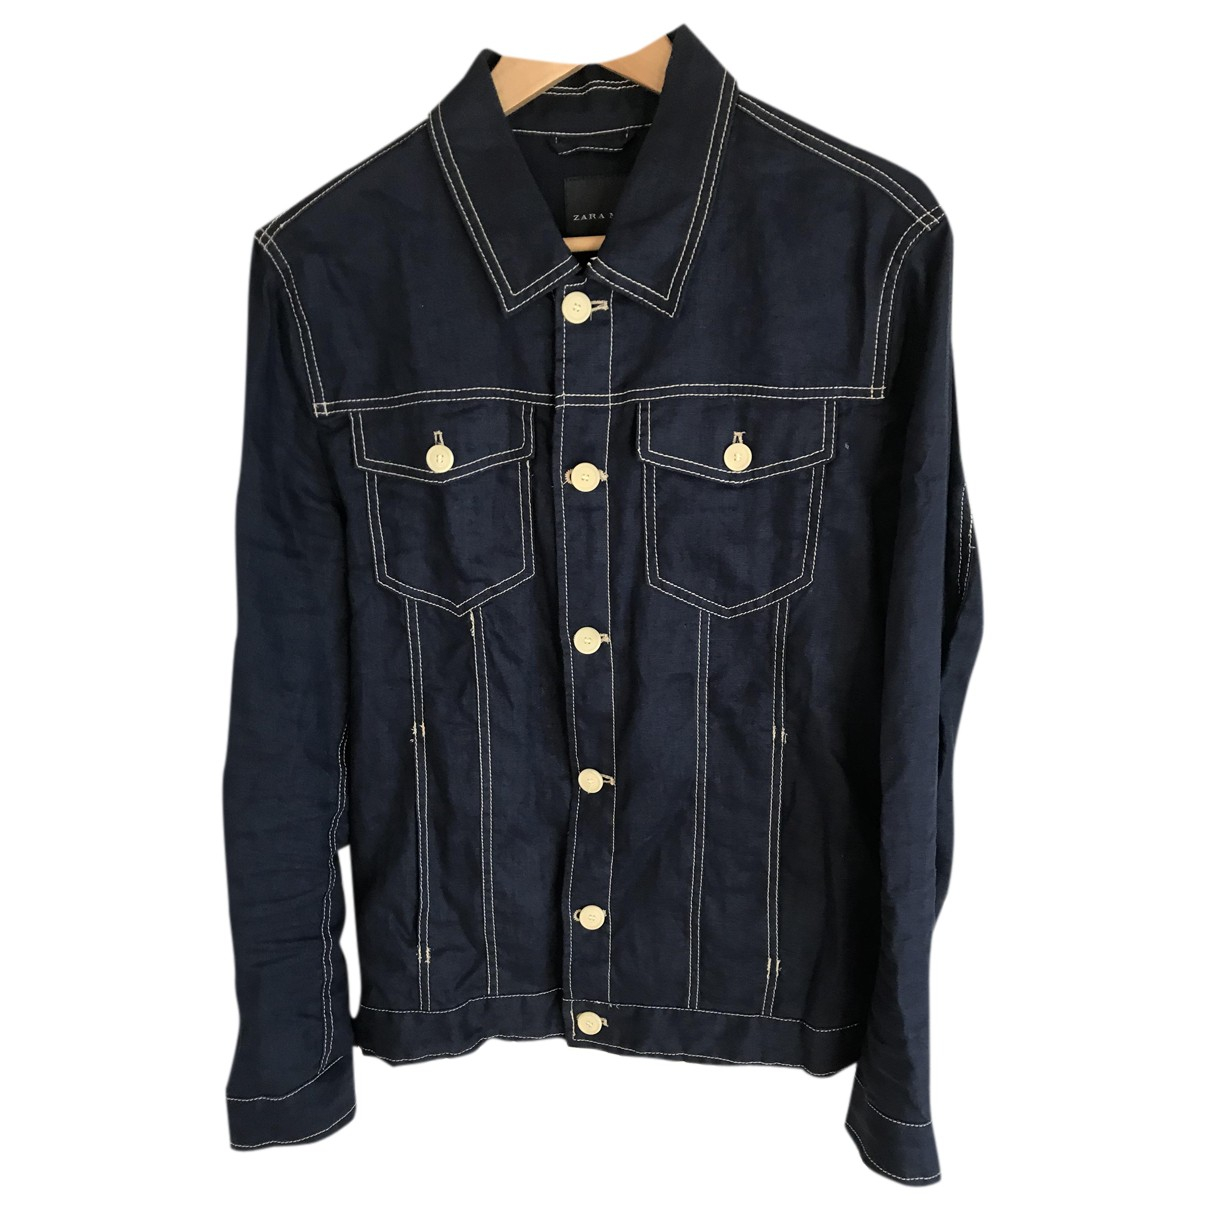 Zara N Navy Linen jacket  for Men M International